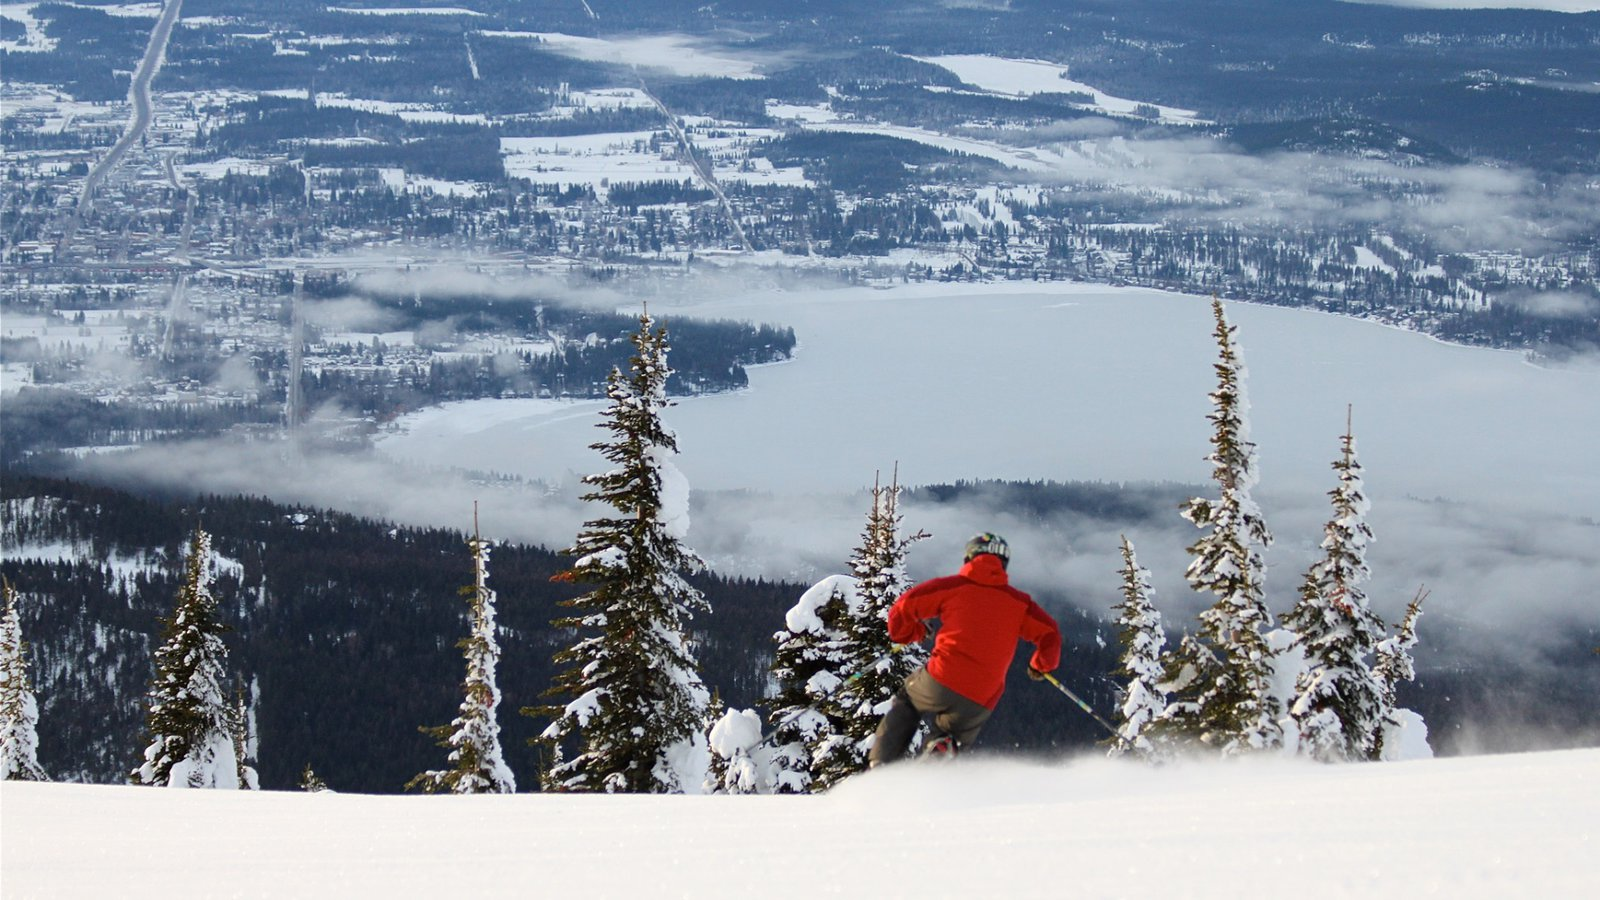 action & adventure pictures: view images of whitefish mountain ski